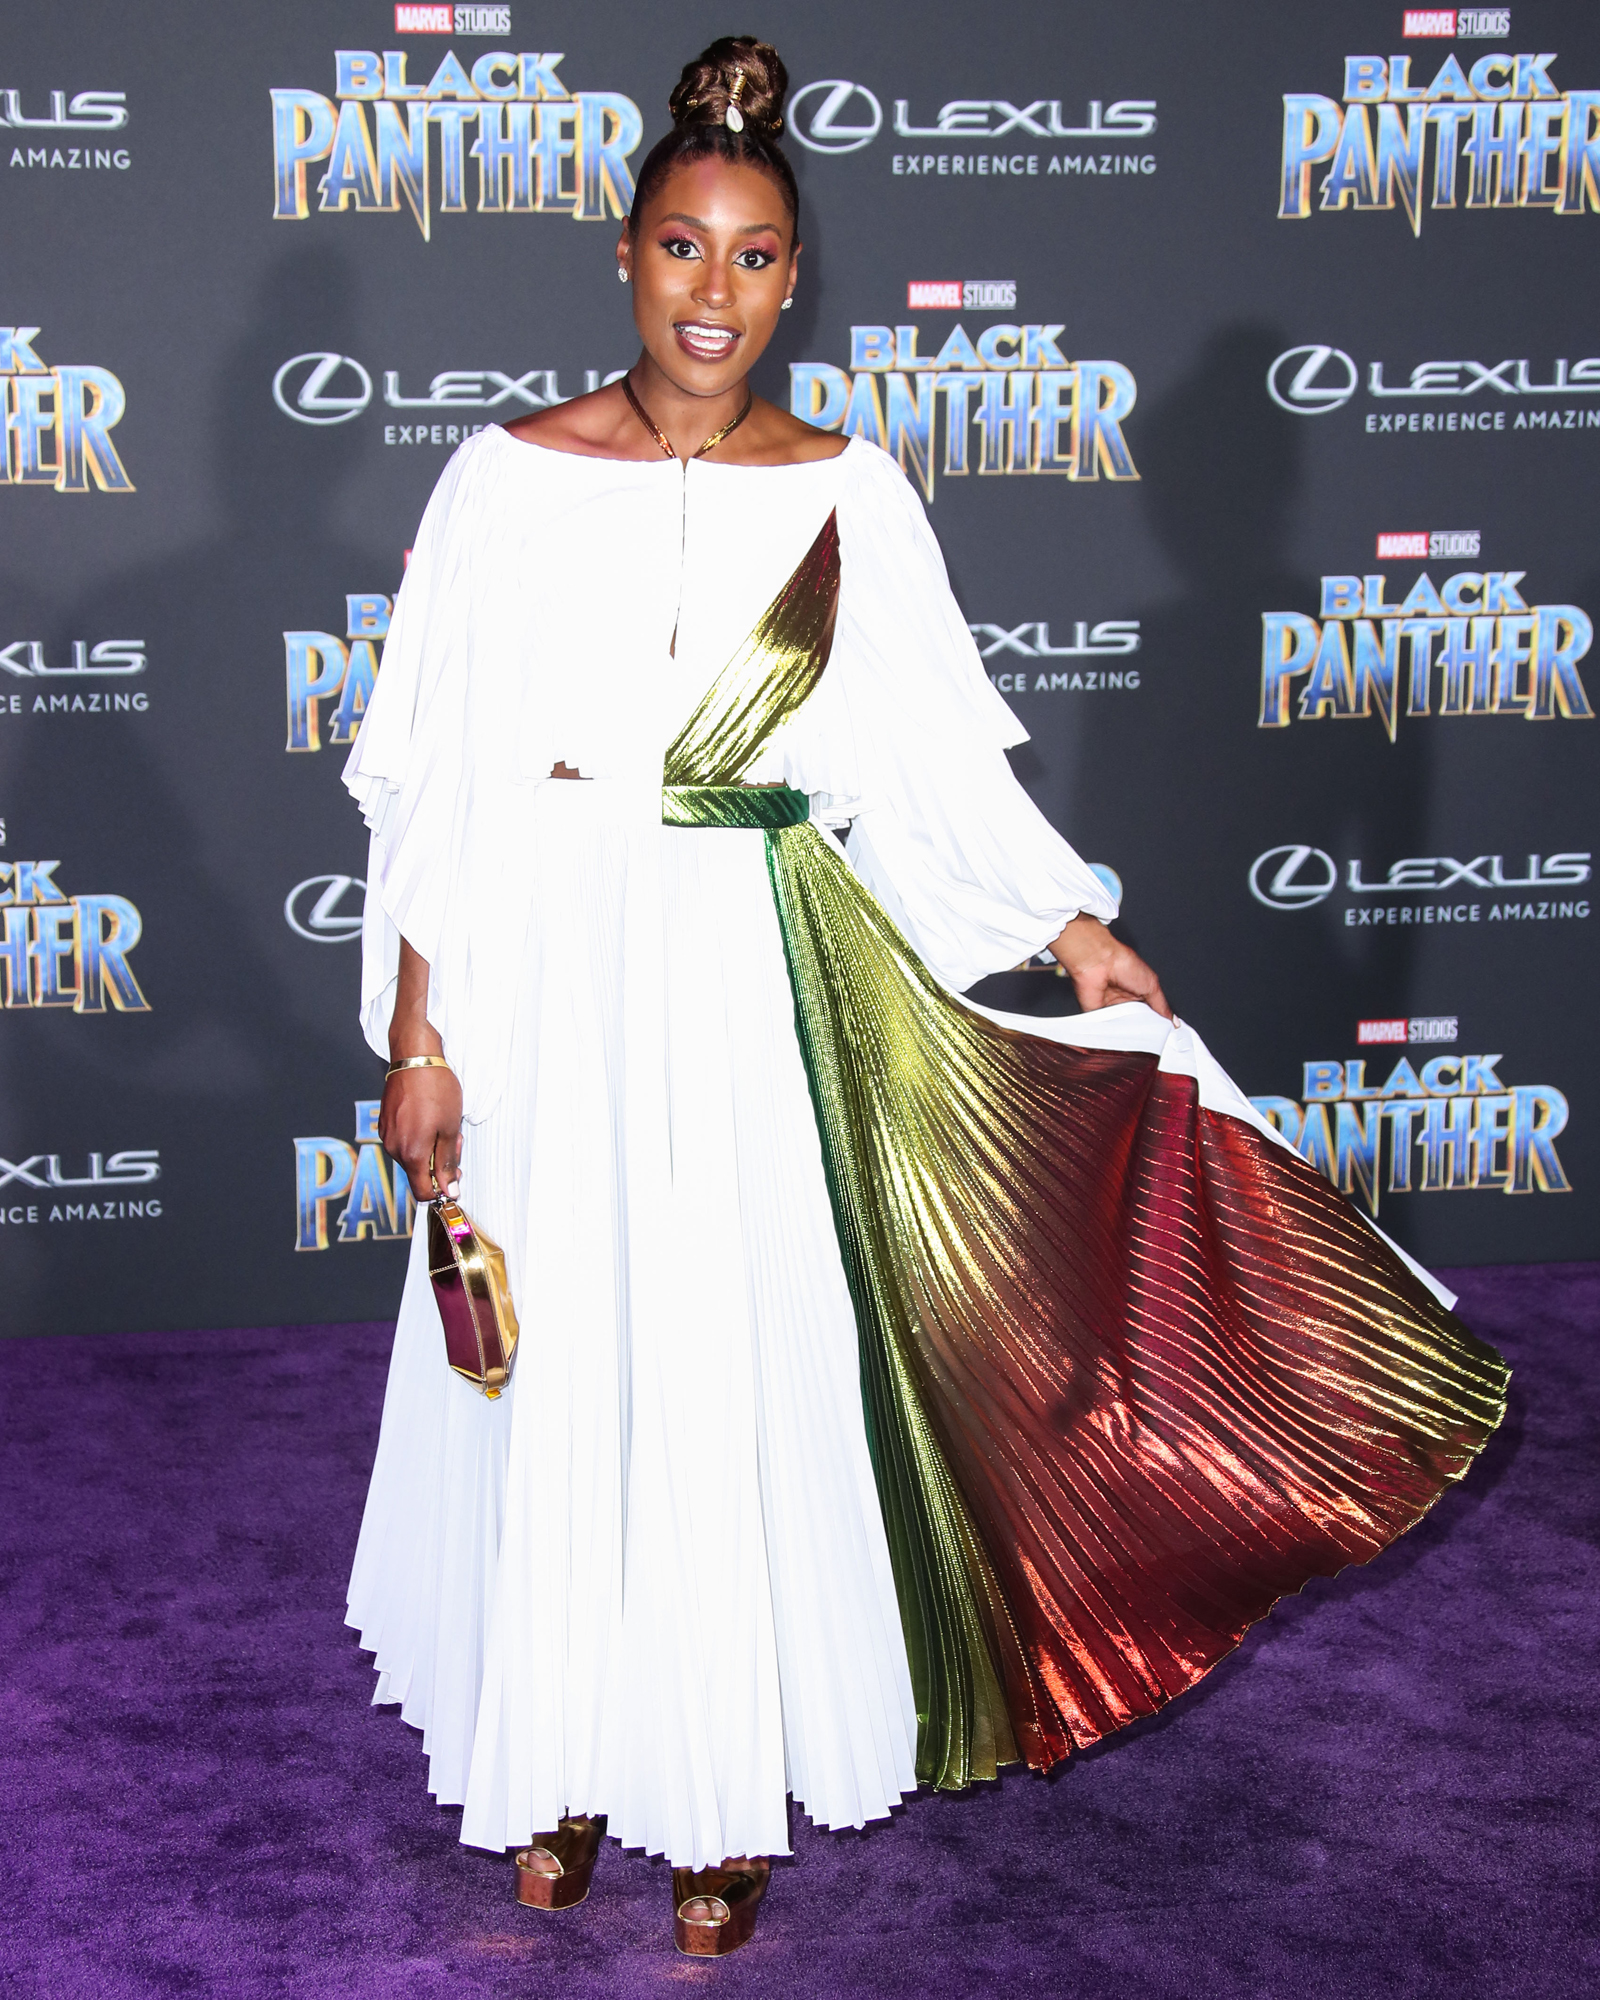 'Black Panther' film premiere, Arrivals, Los Angeles, USA - 29 Jan 2018